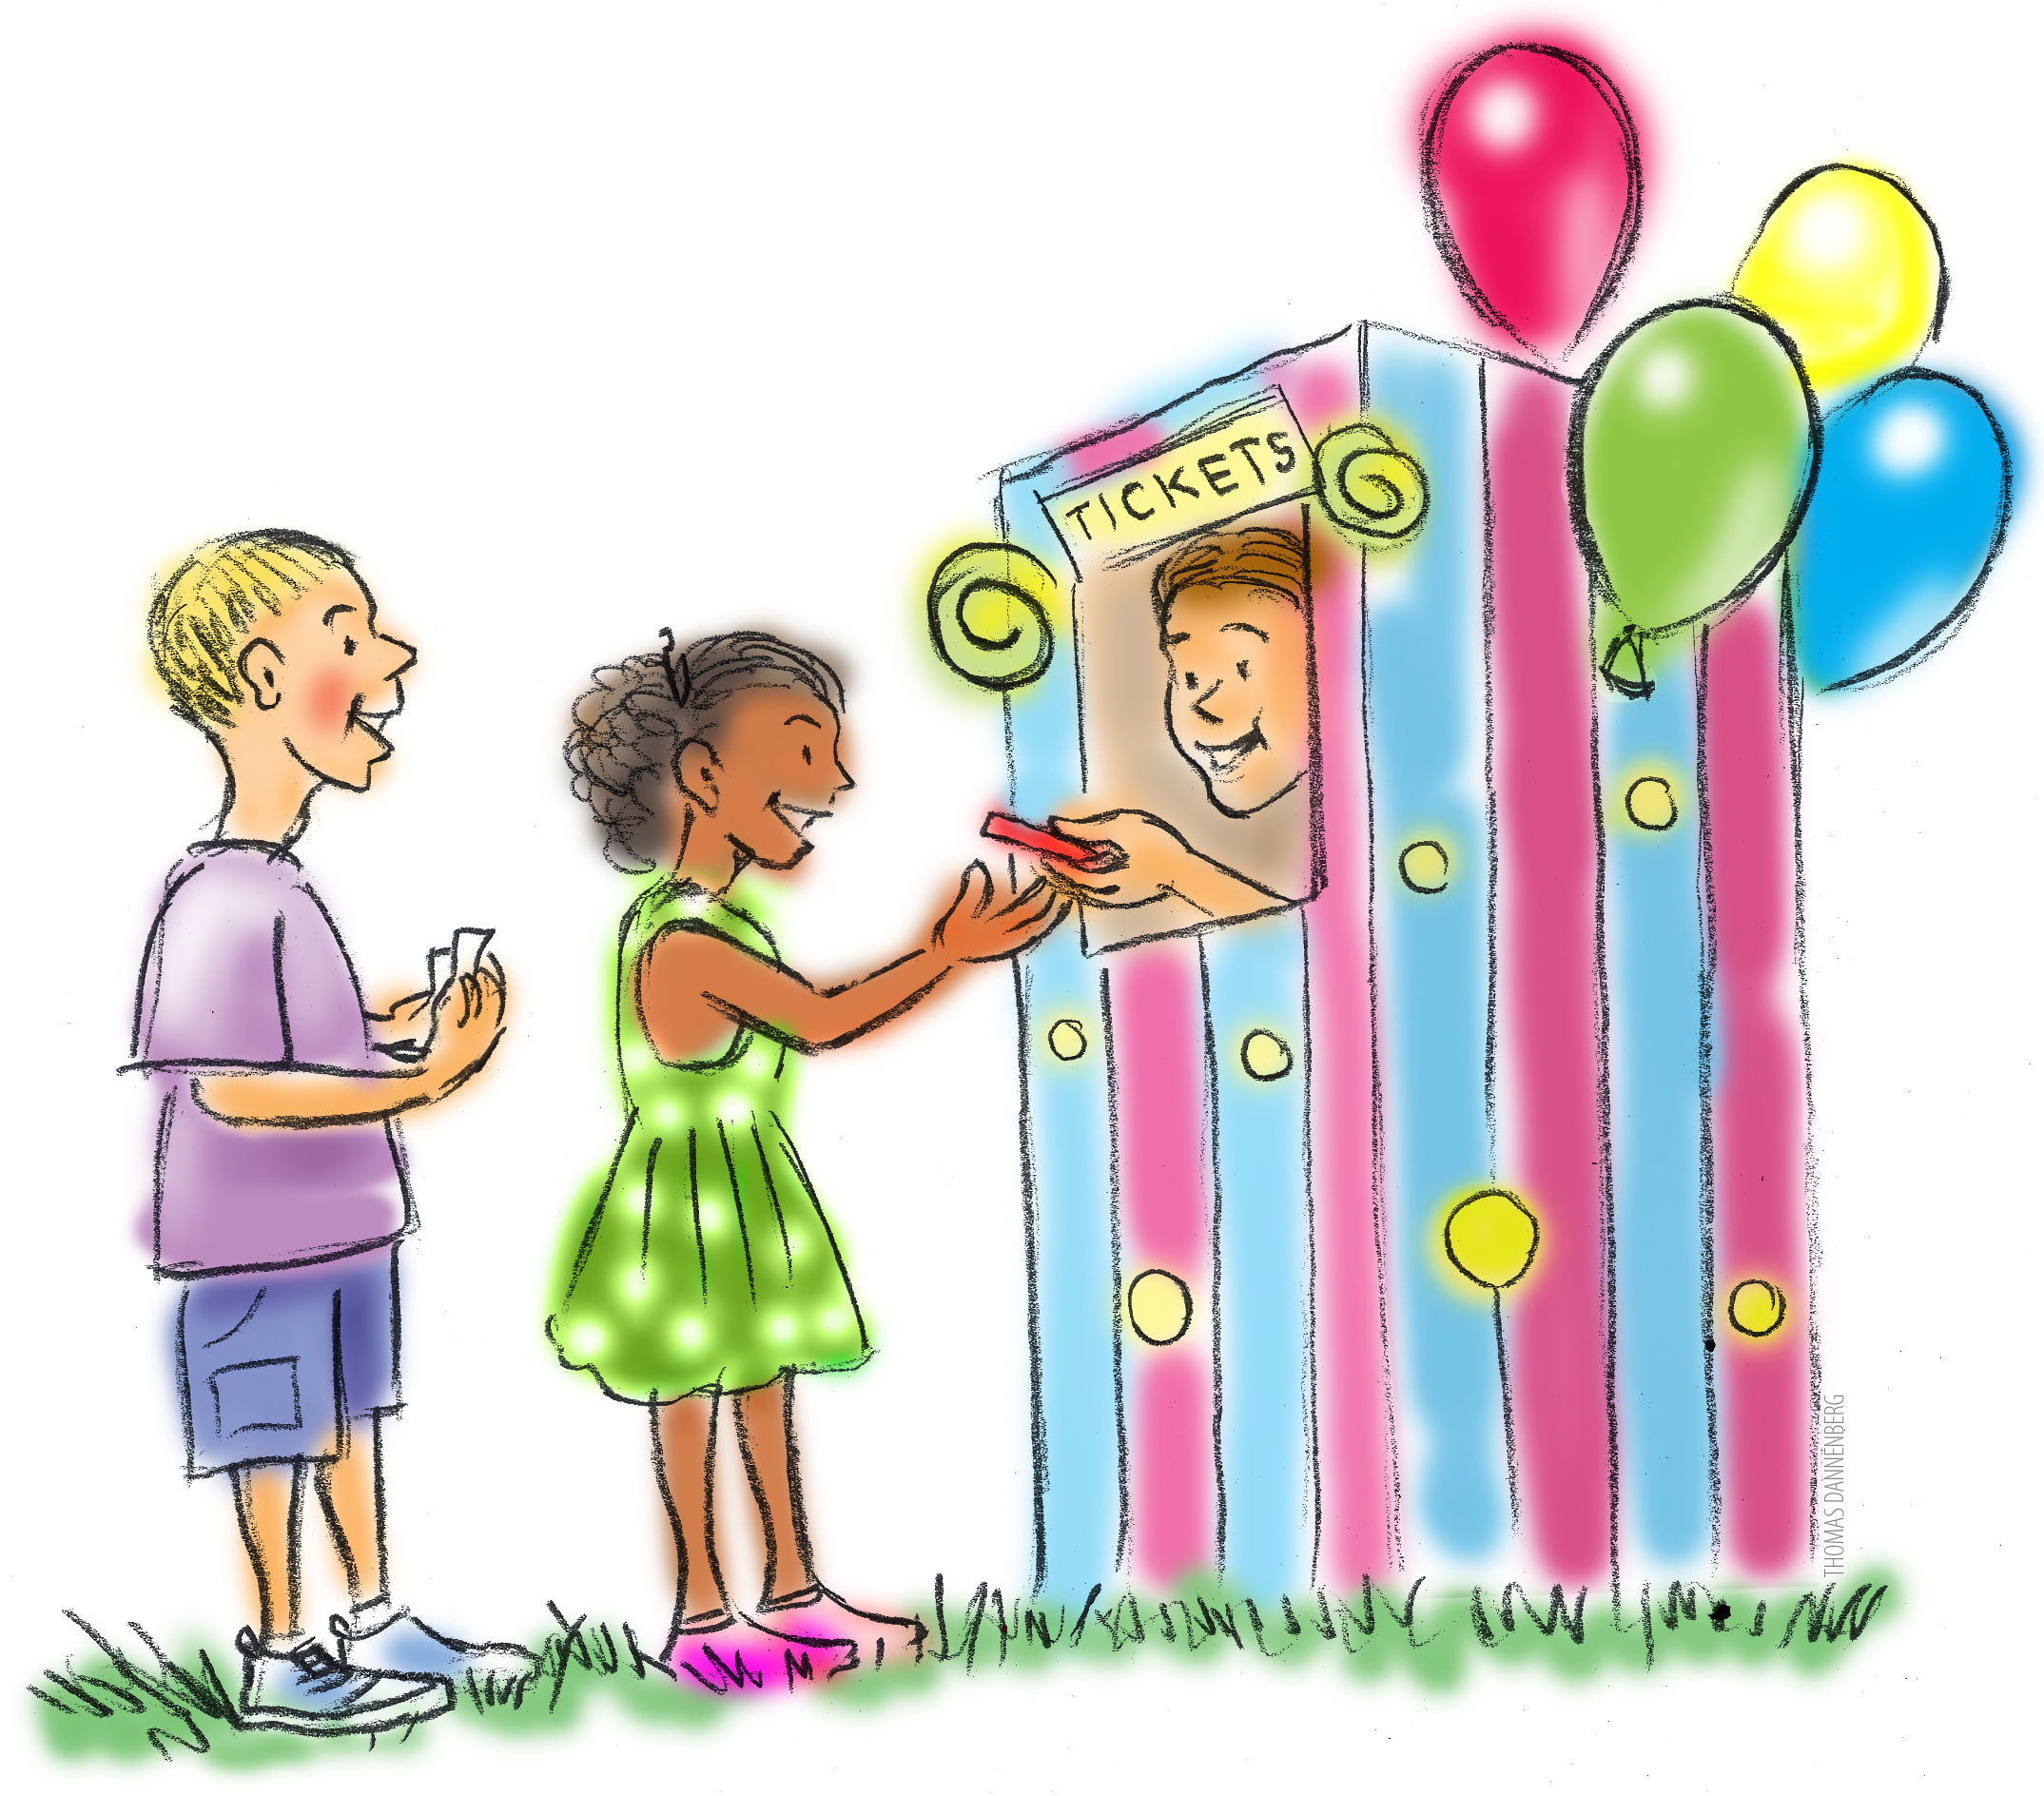 Carnival games kids playing clipart black and white picture freeuse download Carnival Games Clipart Group with 53+ items picture freeuse download